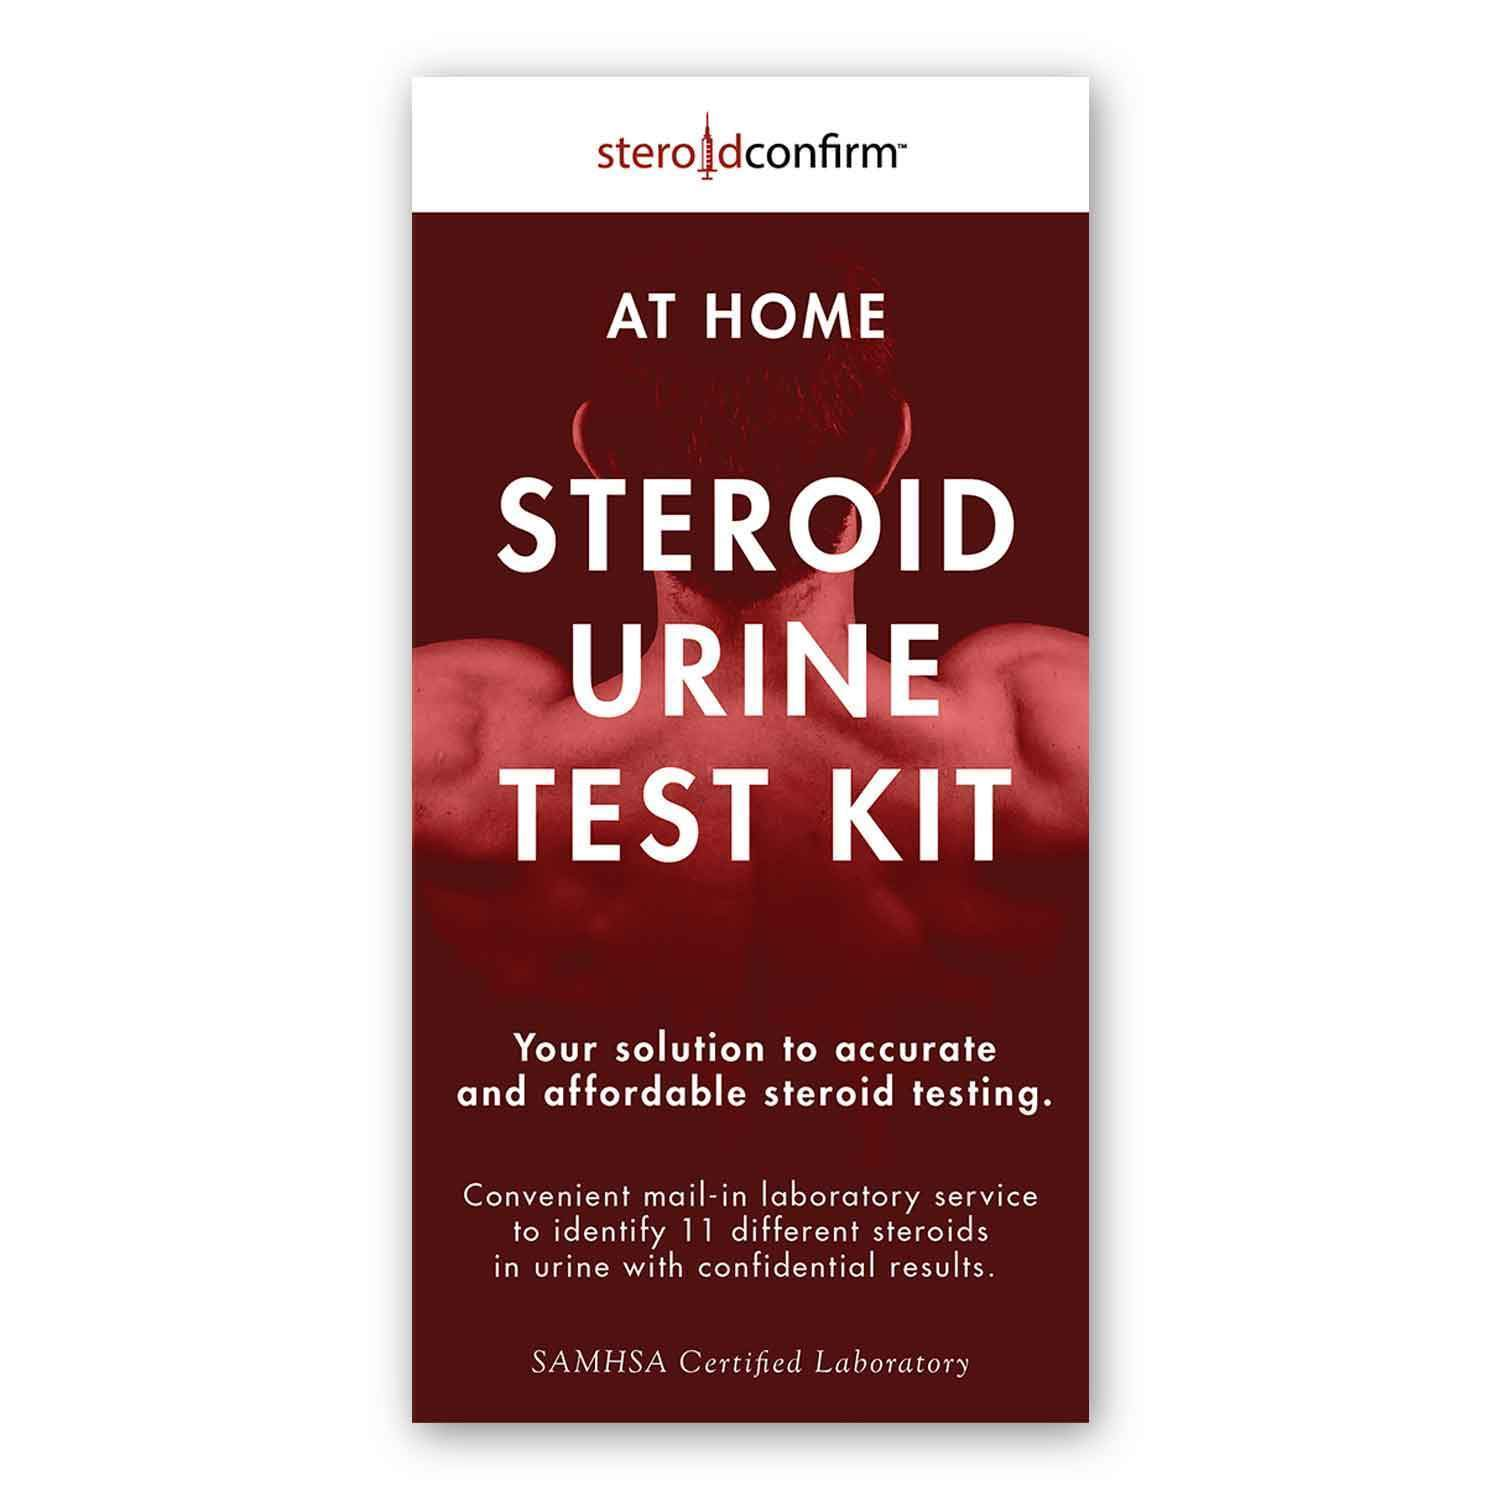 SteroidConfirm™ Home Steroid Test Kit